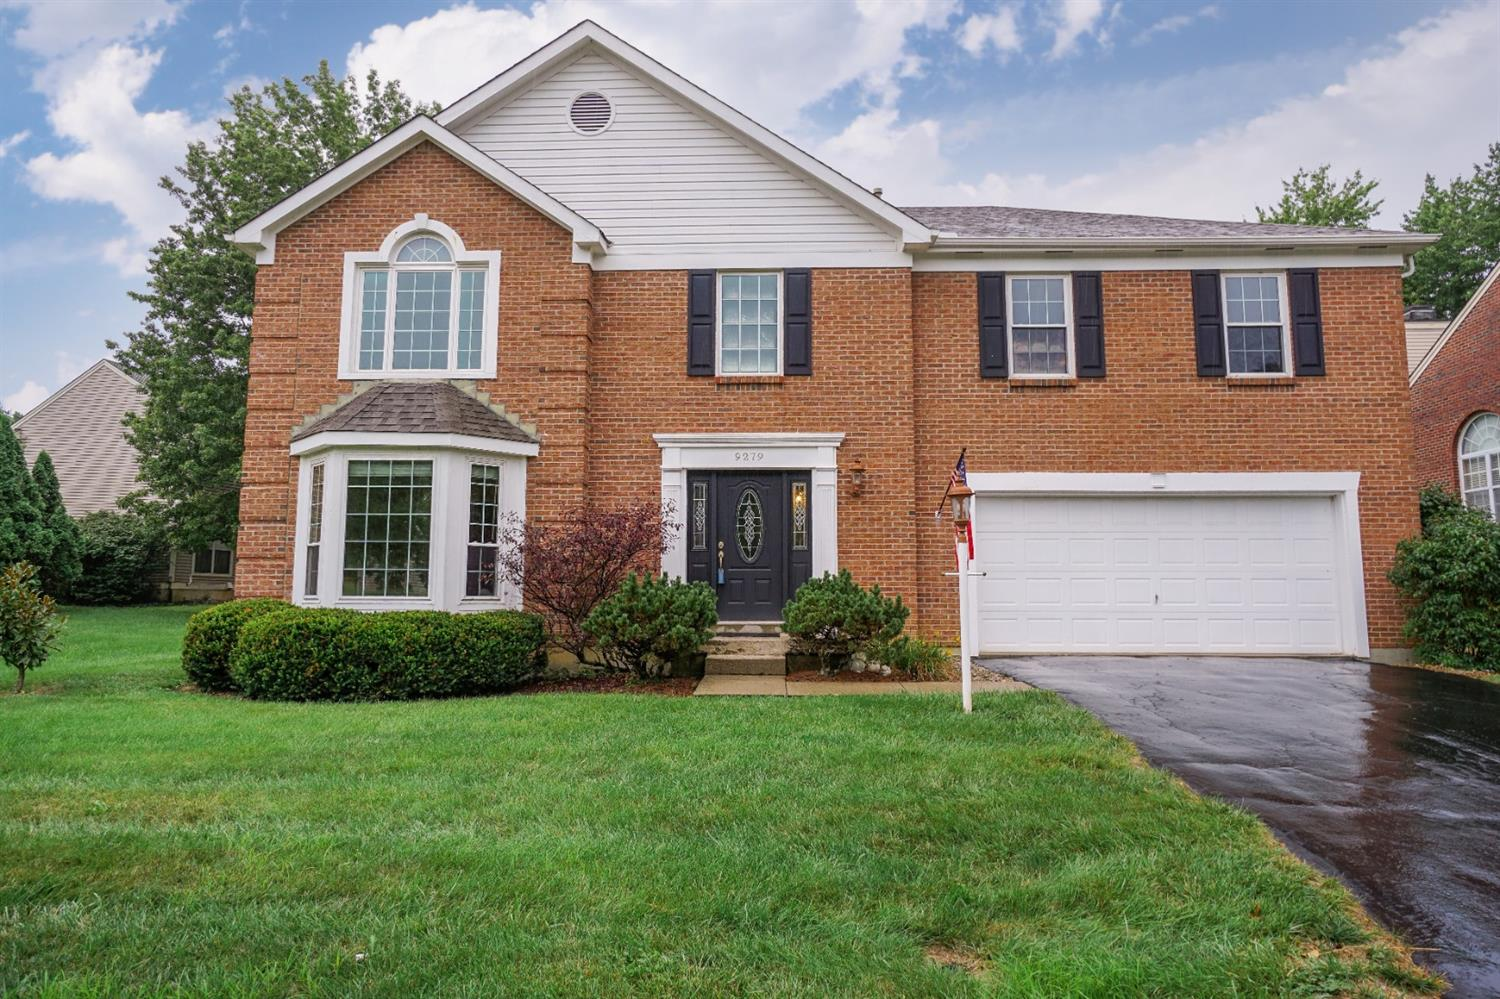 Property for sale at 9279 Old Village Drive, Deerfield Twp.,  Ohio 45140